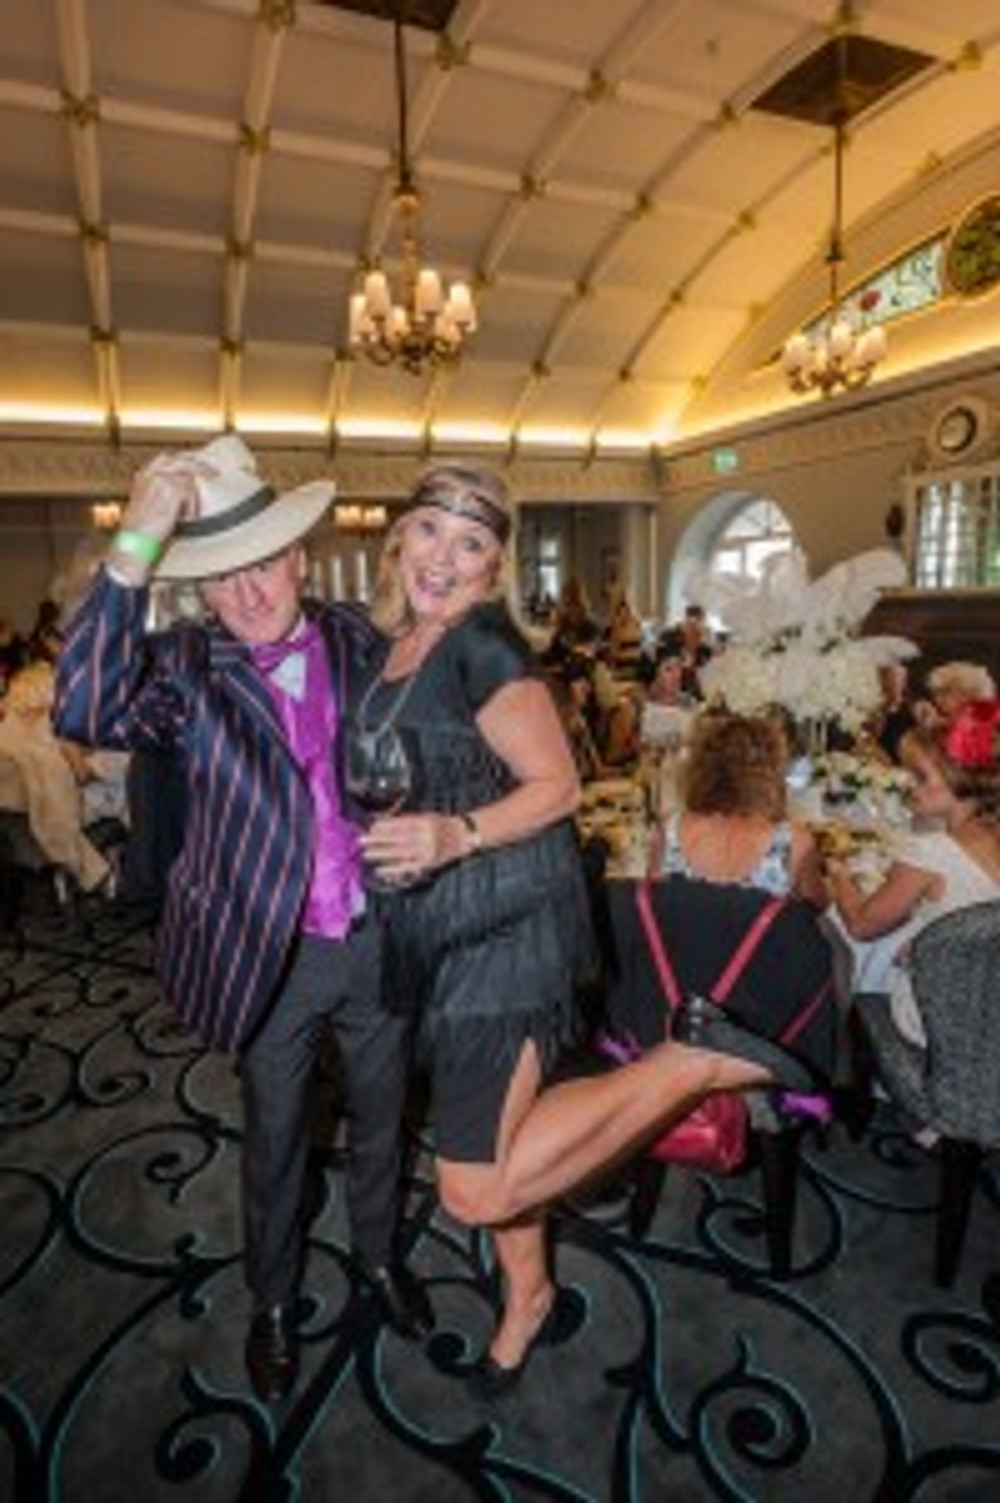 John Calton and Lyndey Milan hamming it up at the Majestic Long Lunch in the Hydro Majestic Ballroom.